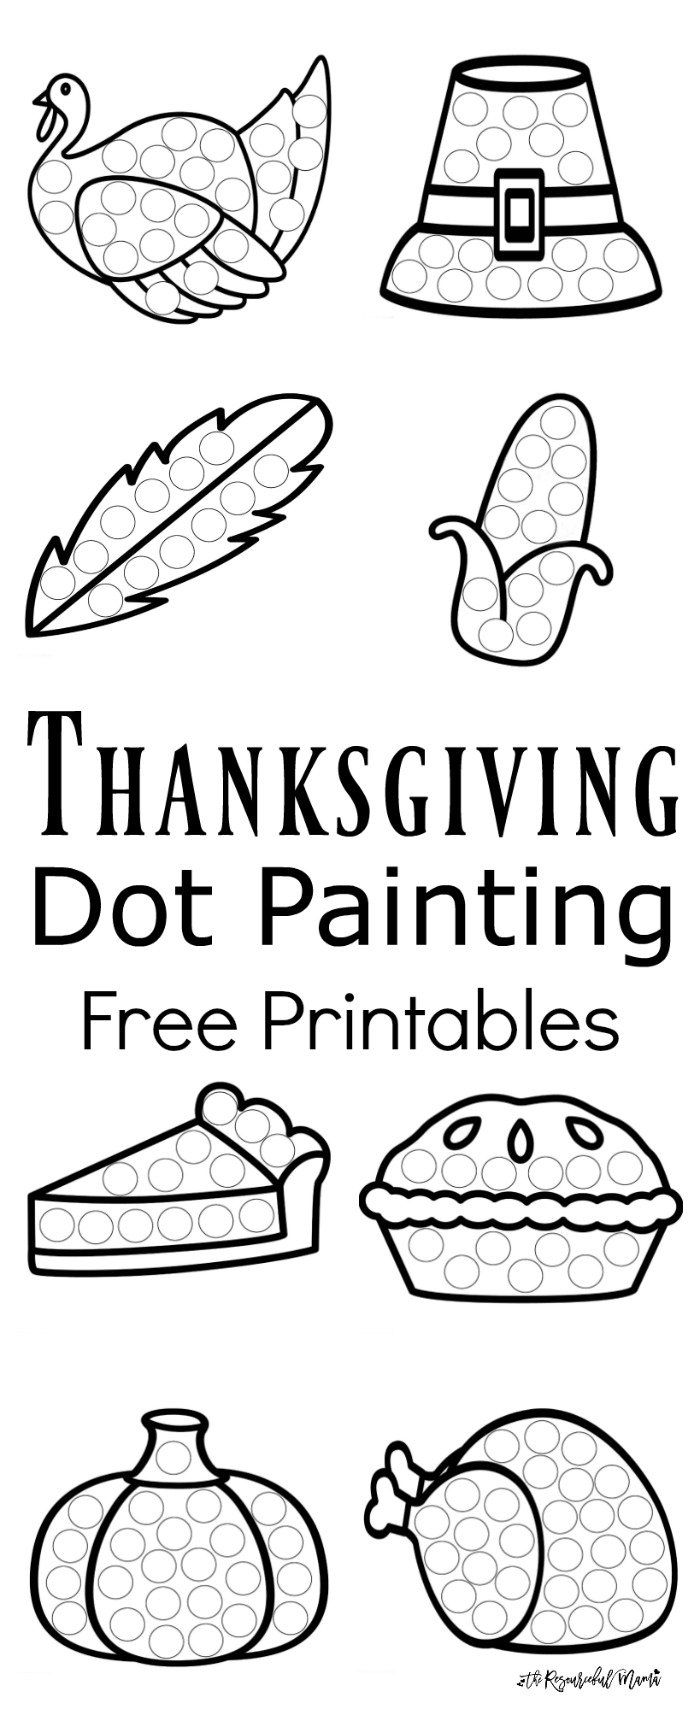 worksheet Toddler Printable Worksheets thanksgiving dot painting free printables activities printables